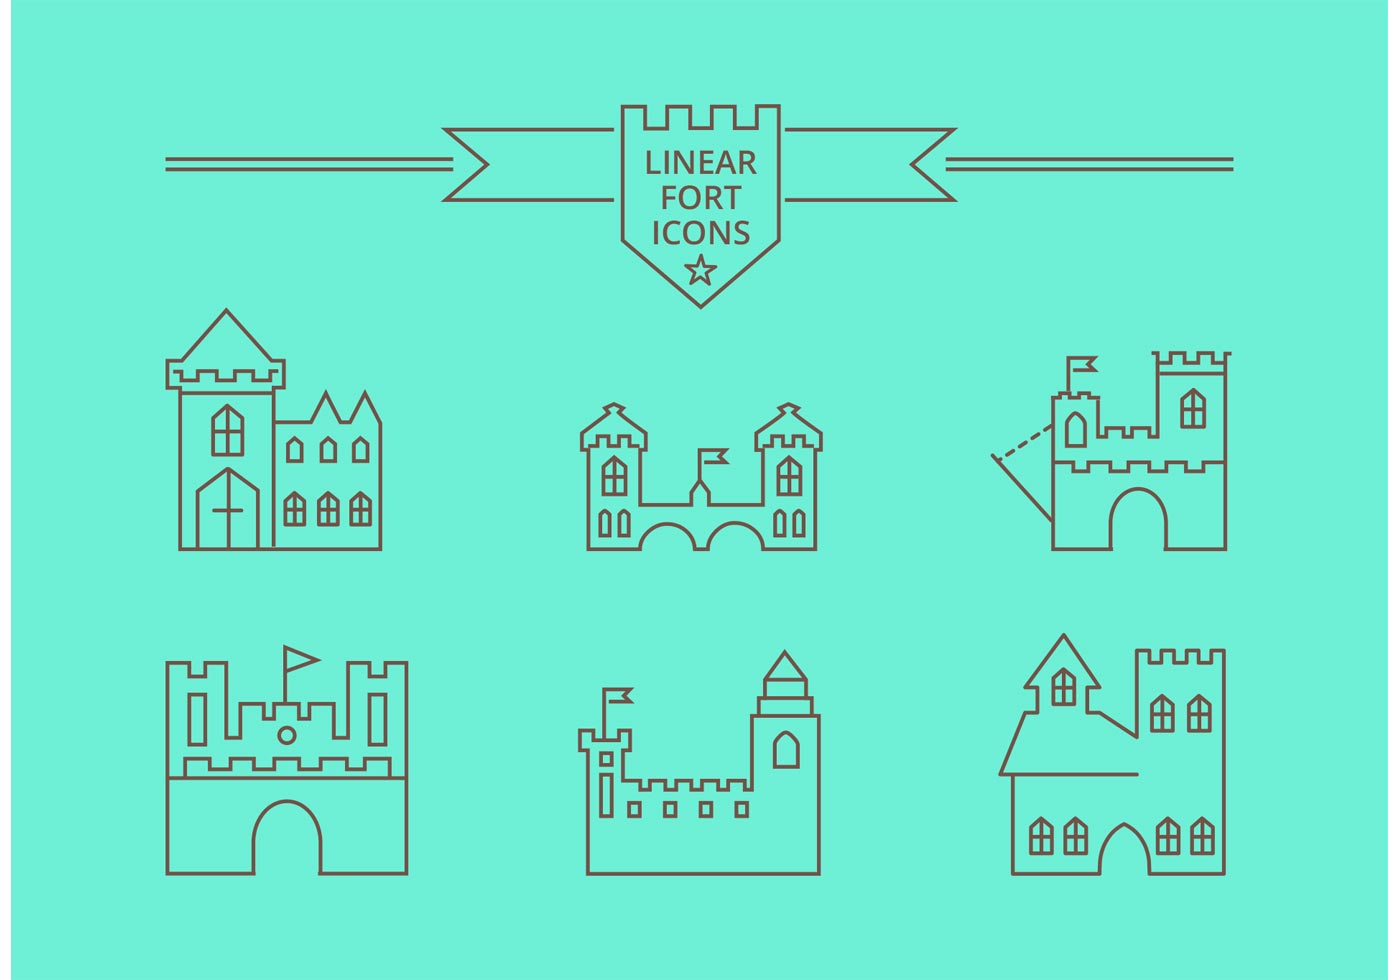 Free Vector Linear Fort Icons - Download Free Vector Art, Stock ...